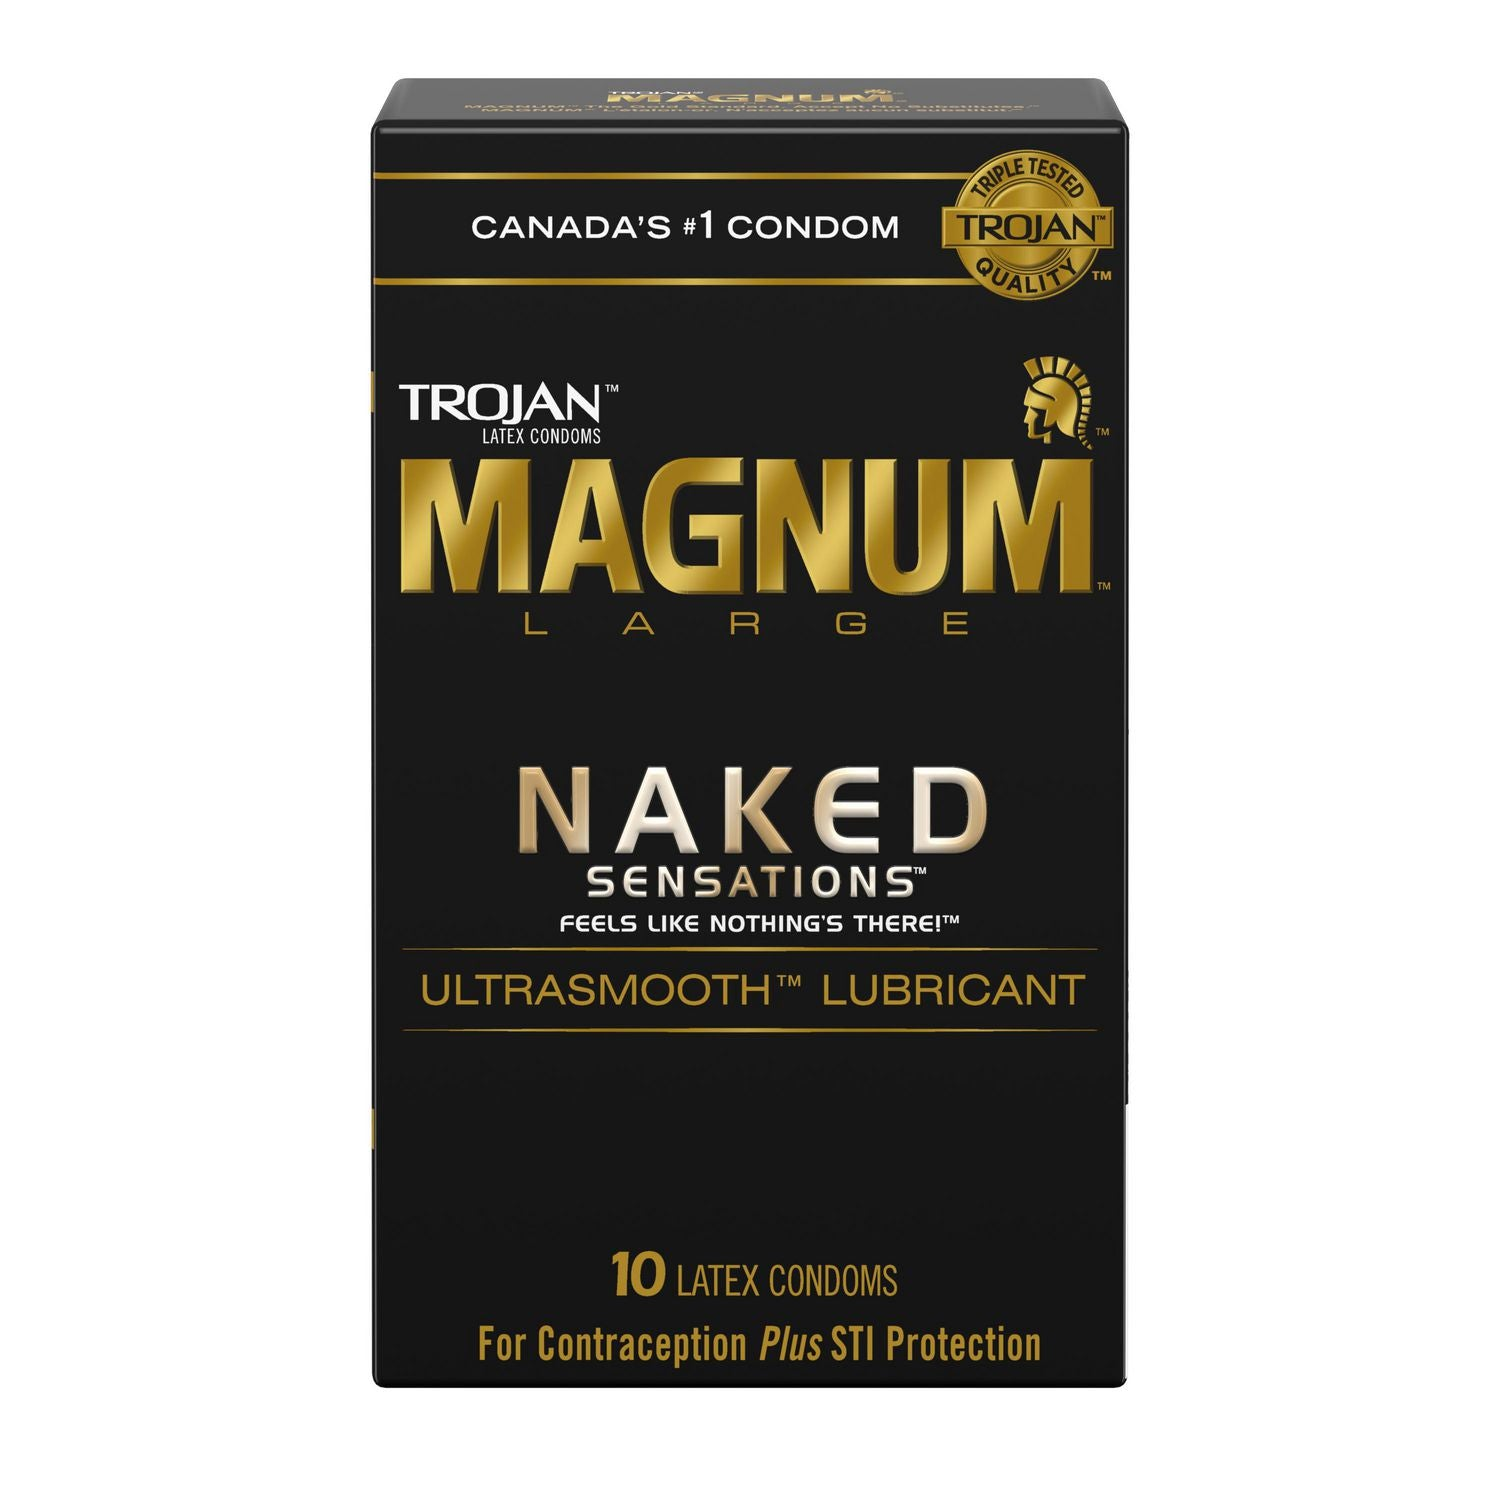 Trojan Magnum Large Naked Sensations 10 Latex Condoms